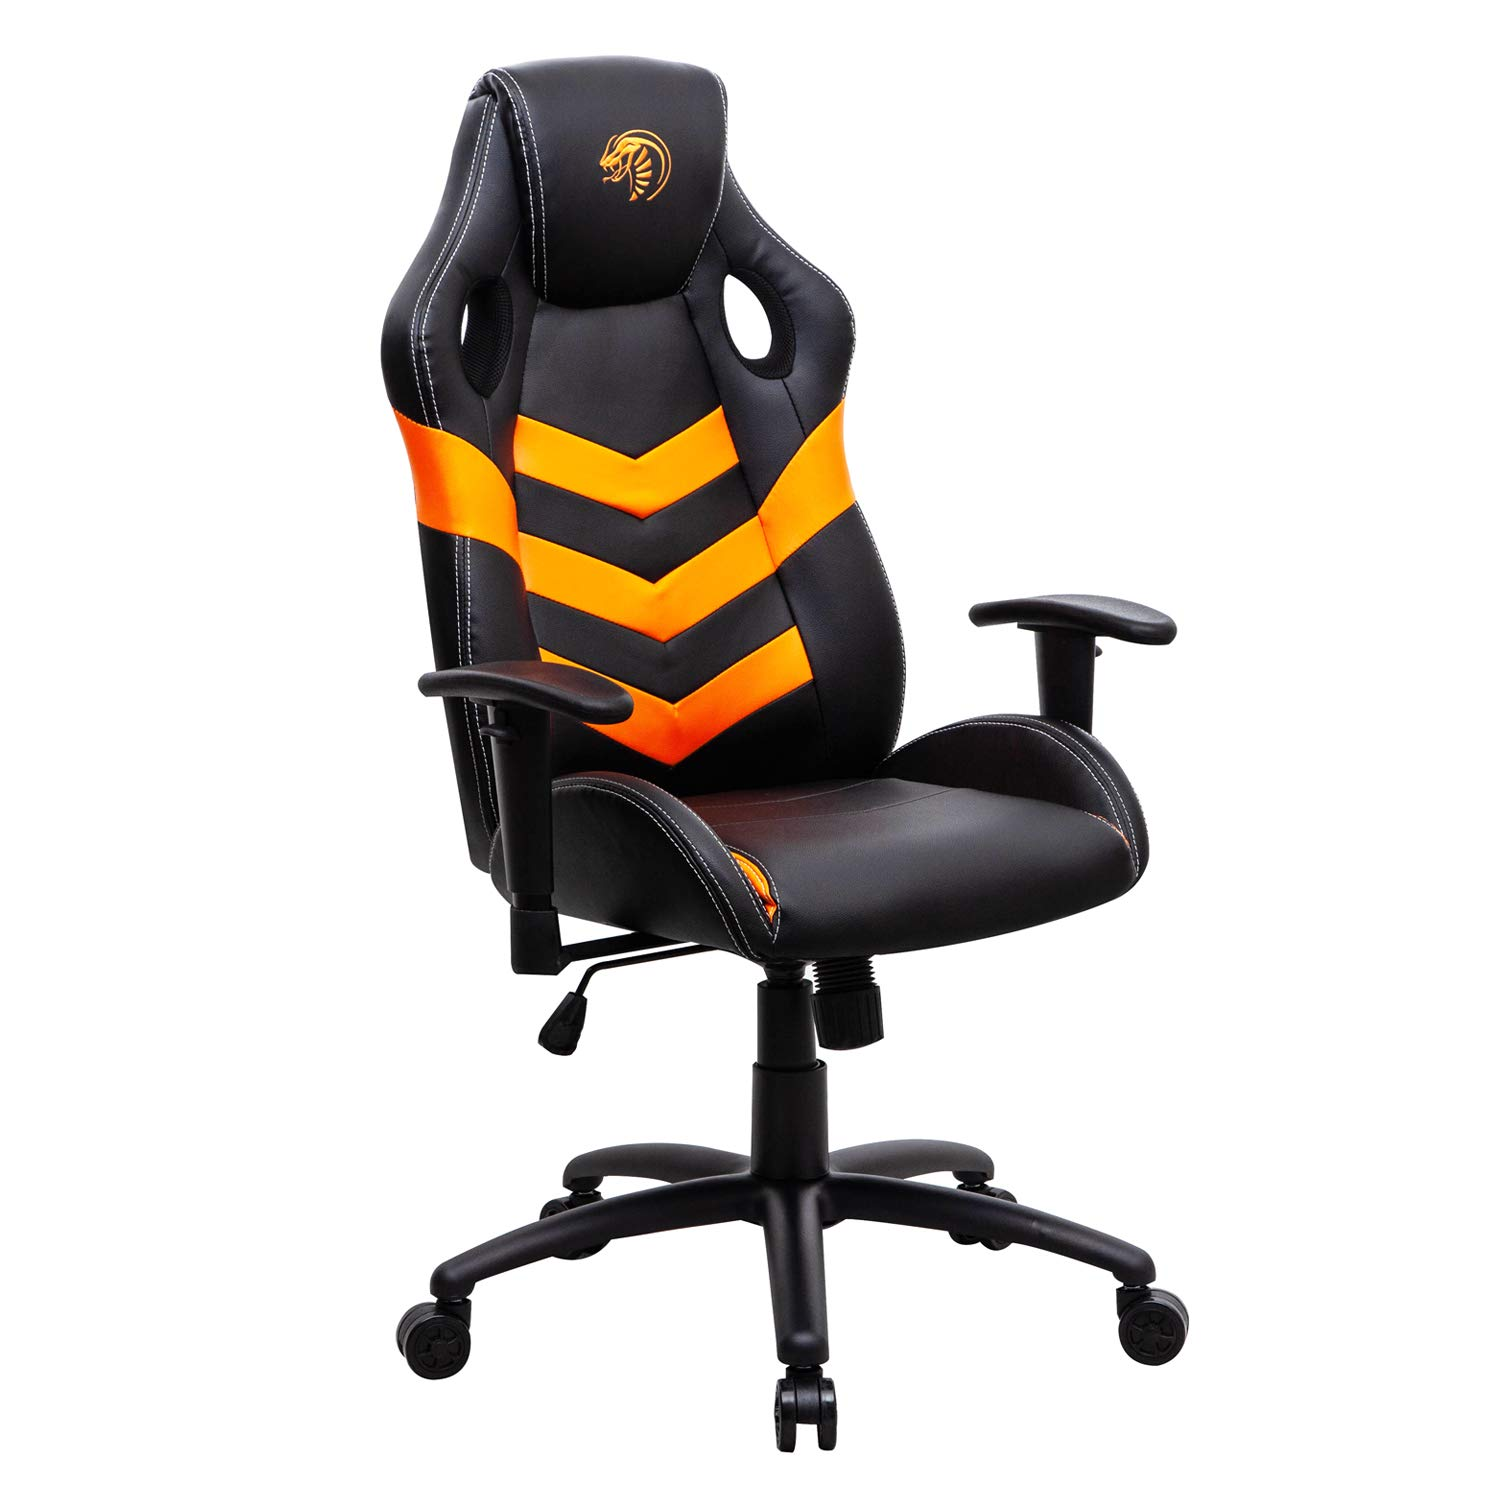 Modern-depo High Back Office Chair PU Leather Desk Gaming Chair | Ergonomic Adjustable Racing Chair, Swivel Executive Computer Chair (Orange